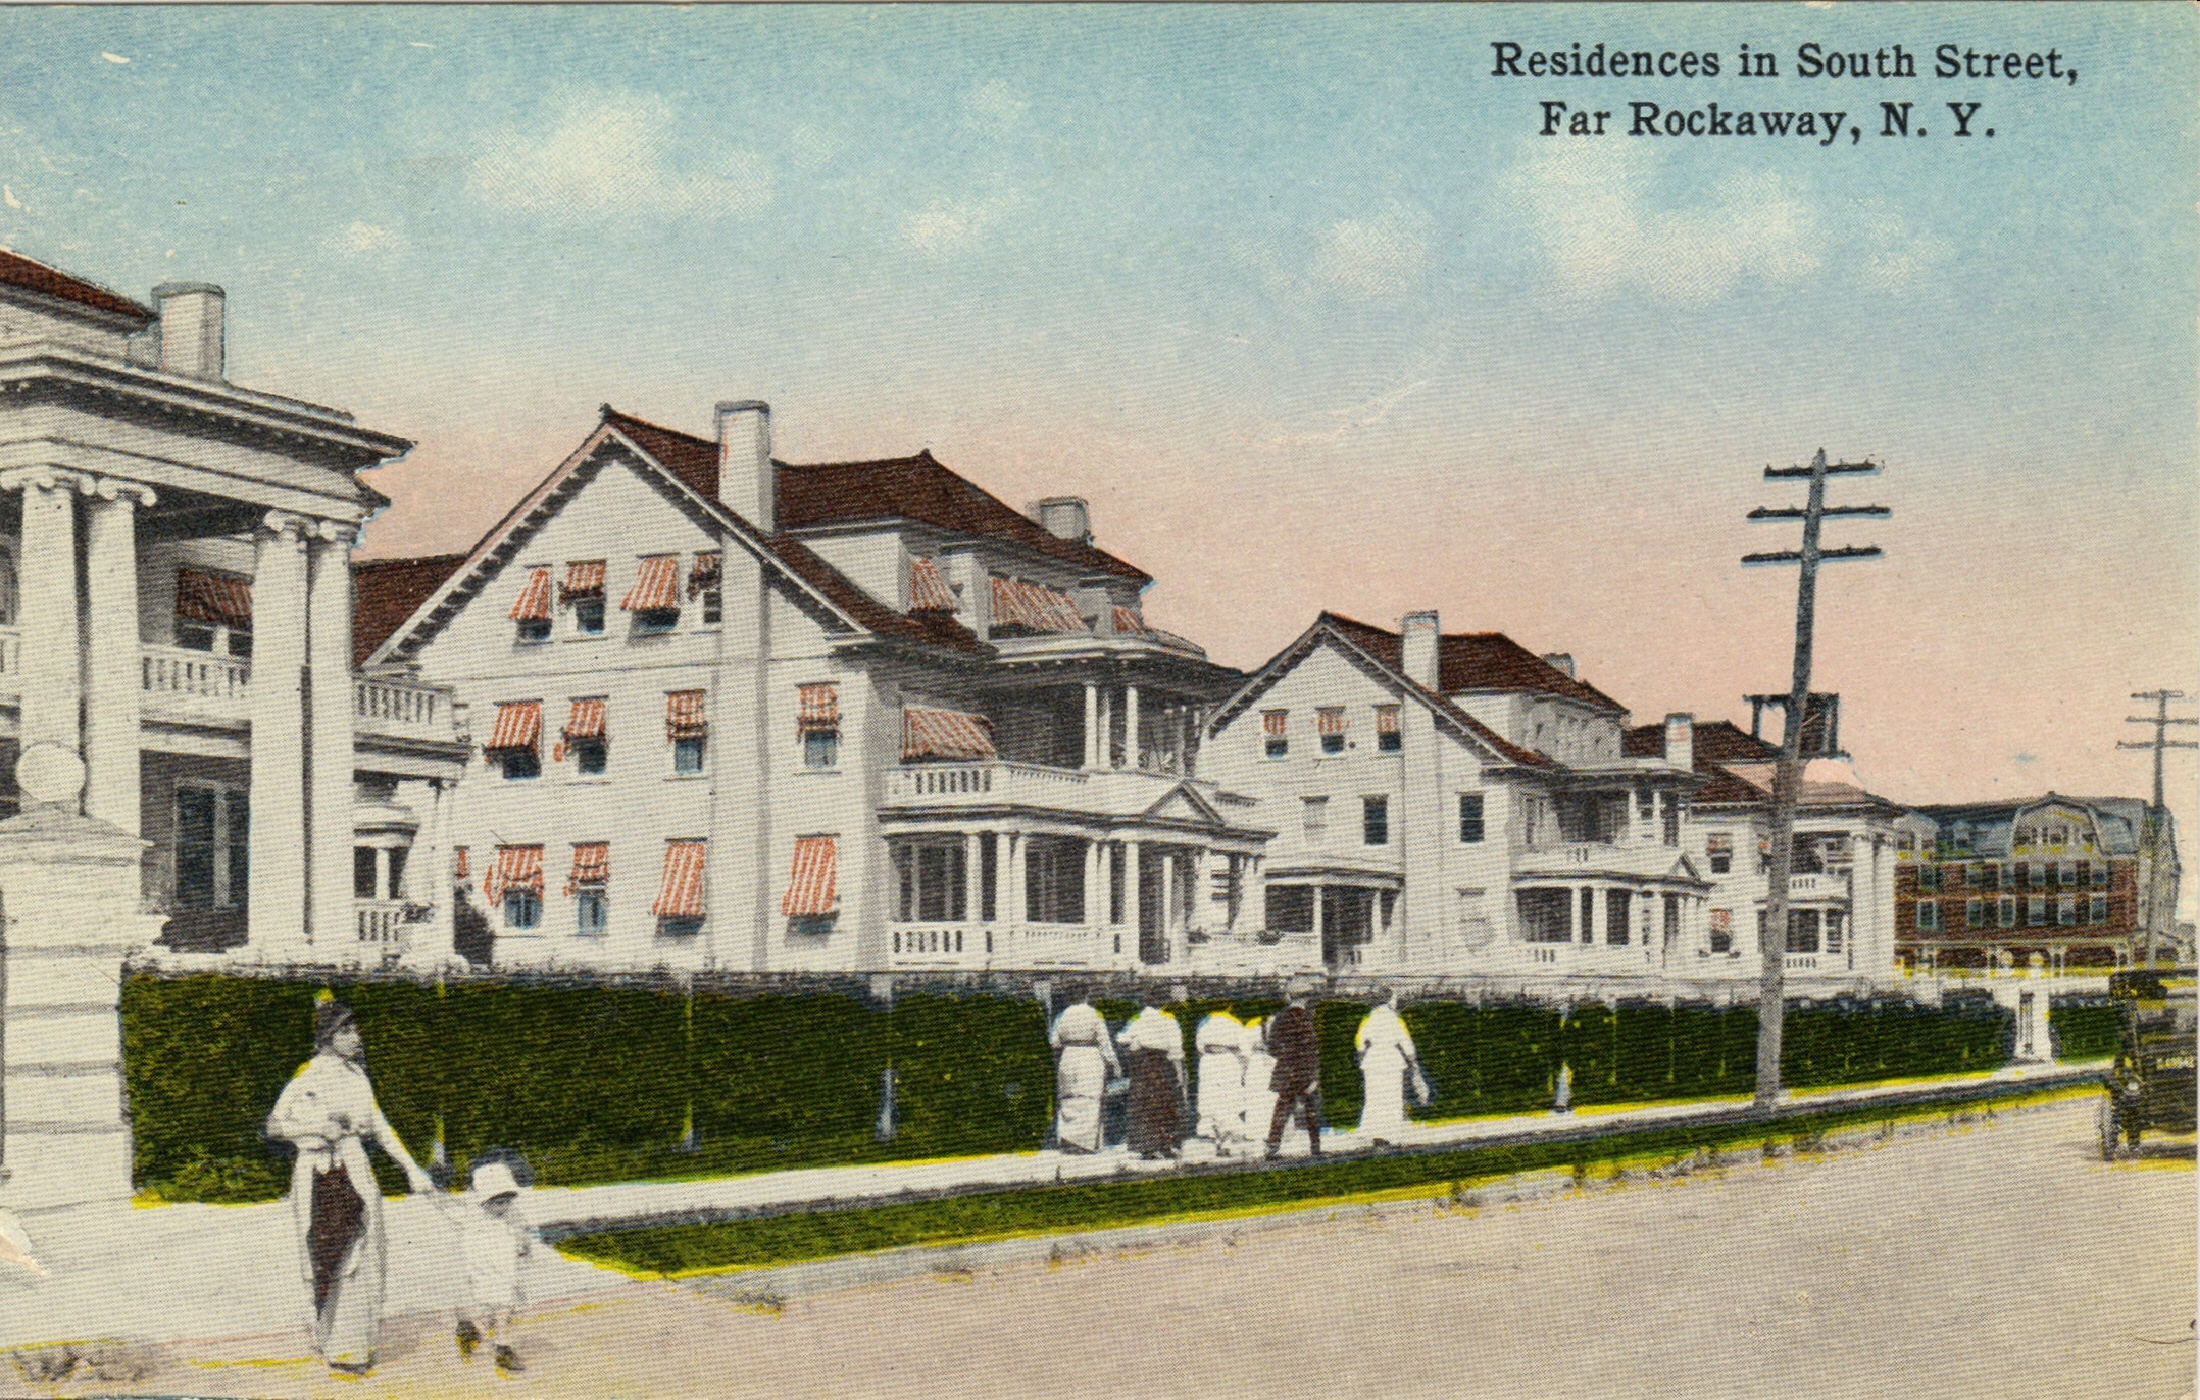 Homes Along South Street Which Later Became Seagirt Blvd. These Homes, Part Of The Roche Estate Eventually Became HILI. The First Jewish Day School On Long Island (which I attended for 9th grade)   Photo courtesy of the  Leiman Library    and The Leiman Collection on  Rockawaymemories.com